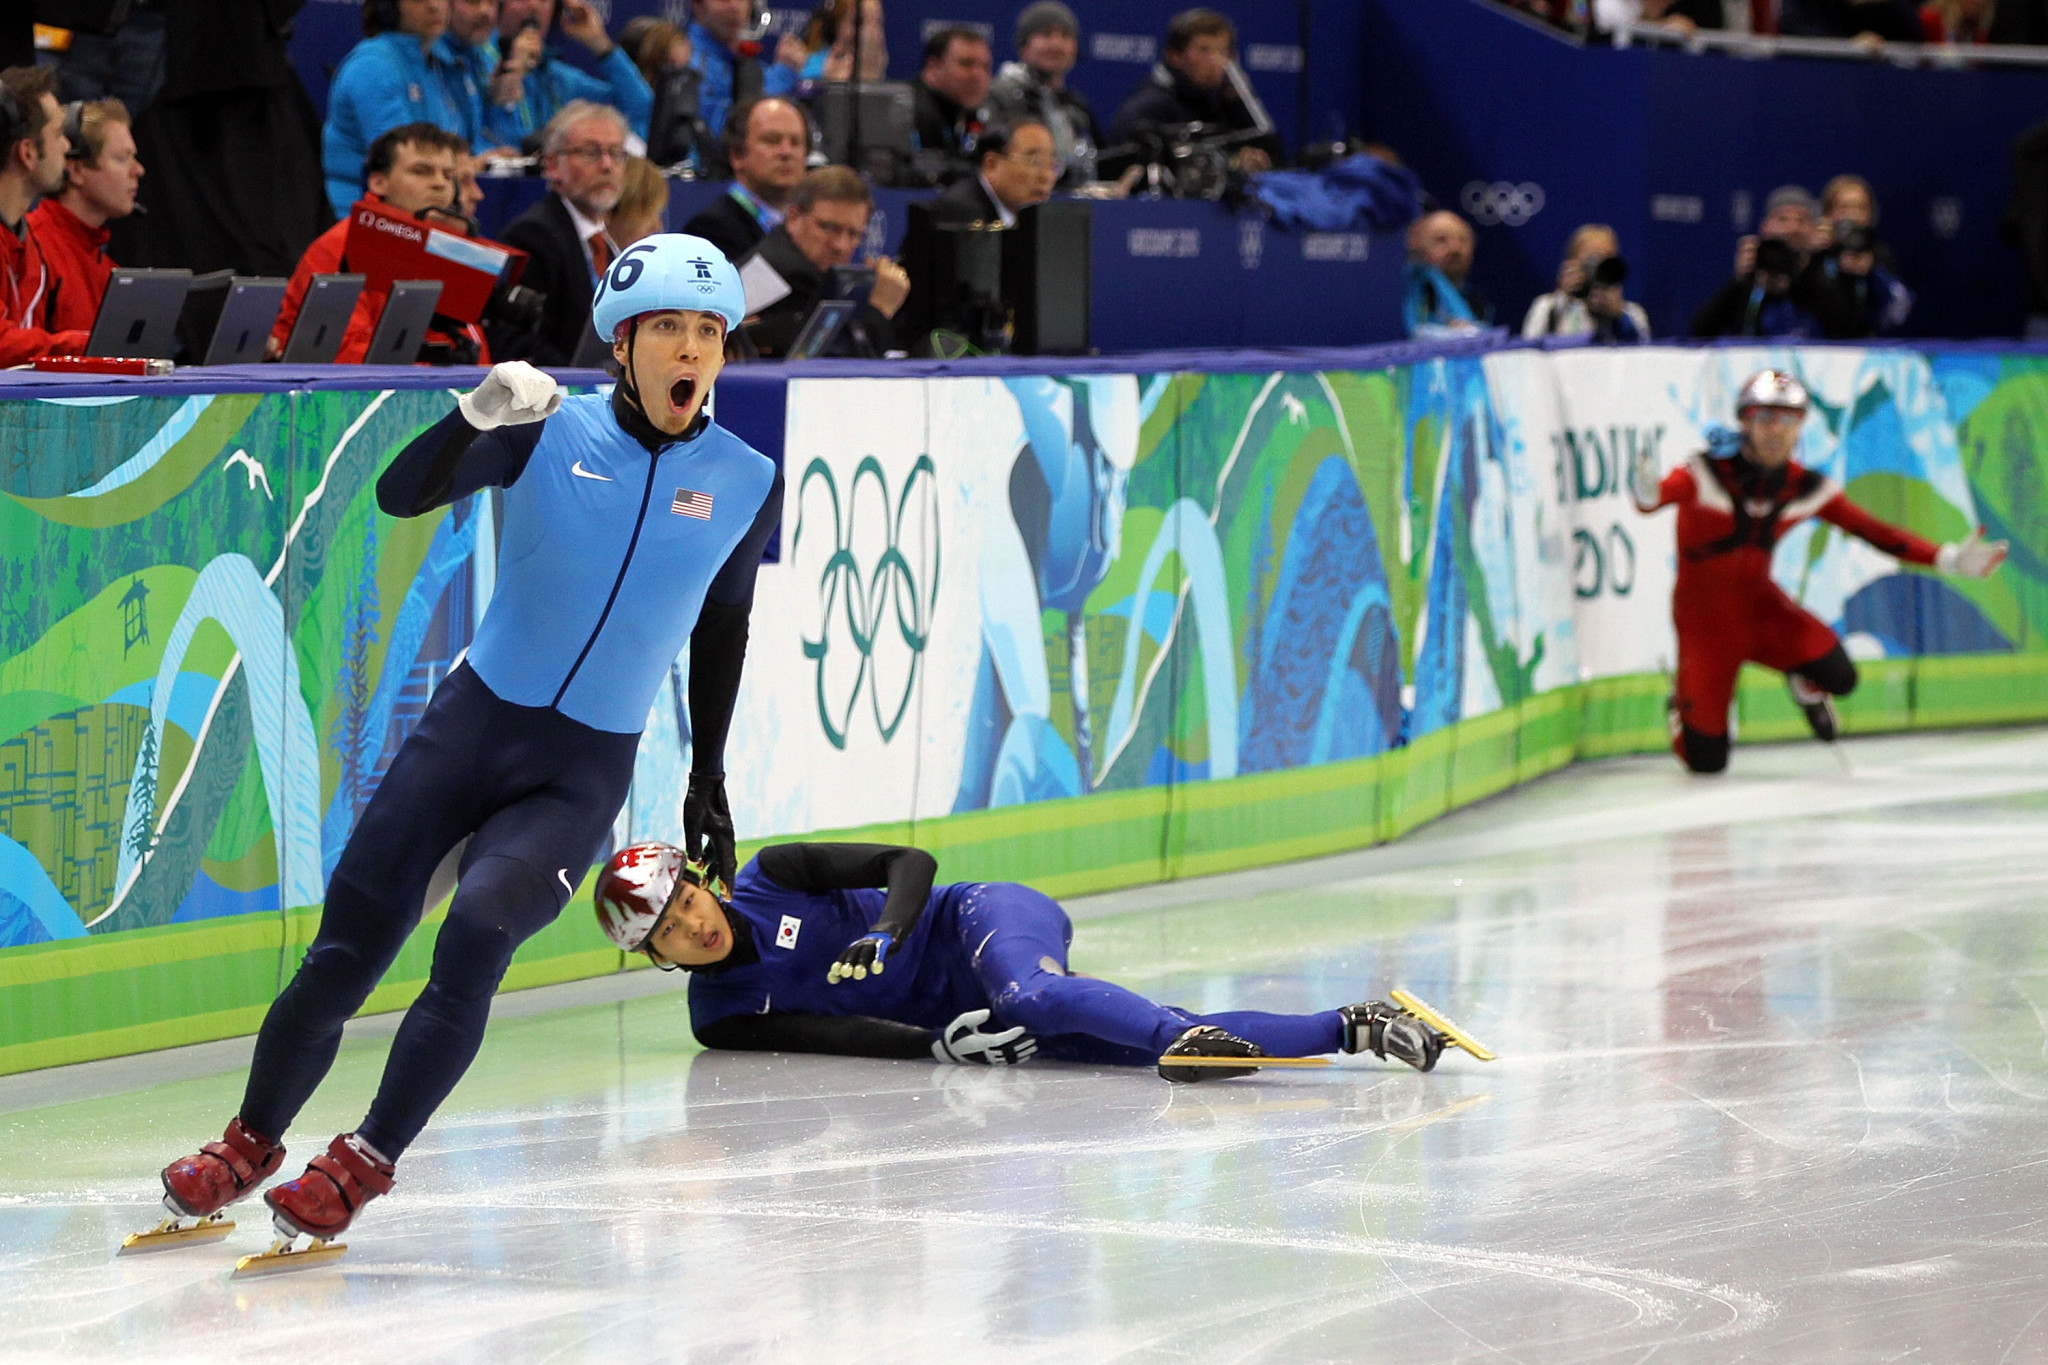 Apolo Ohno has won more medals at the Winter Olympics than any other American, with eight including two golds ©Getty Images